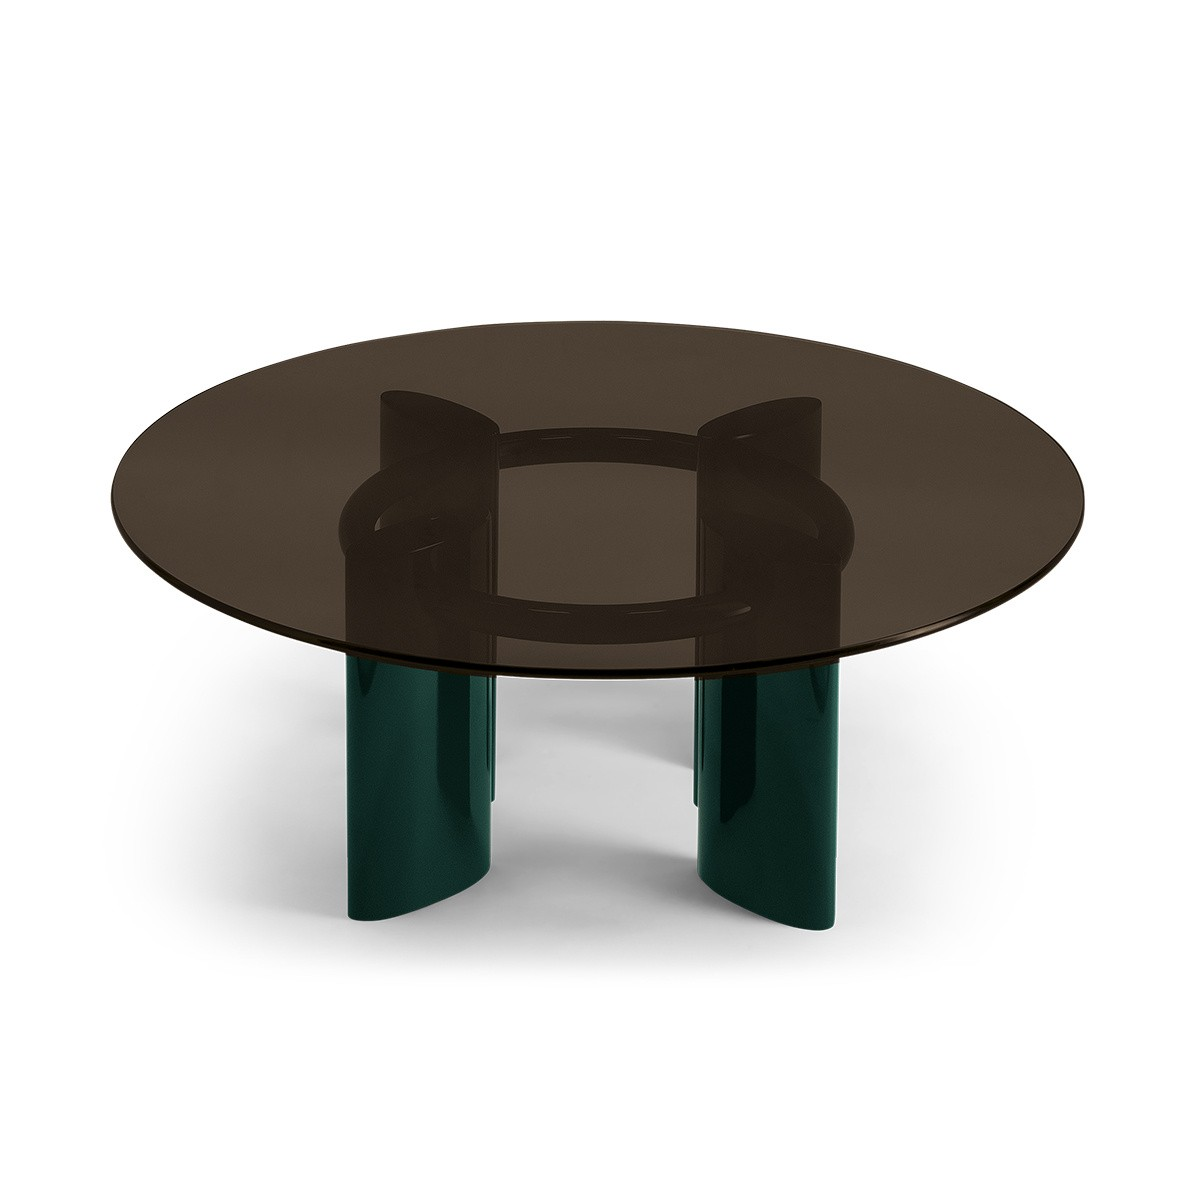 Carlotta Coffee Table, Smoked Glass Top and Green Legs